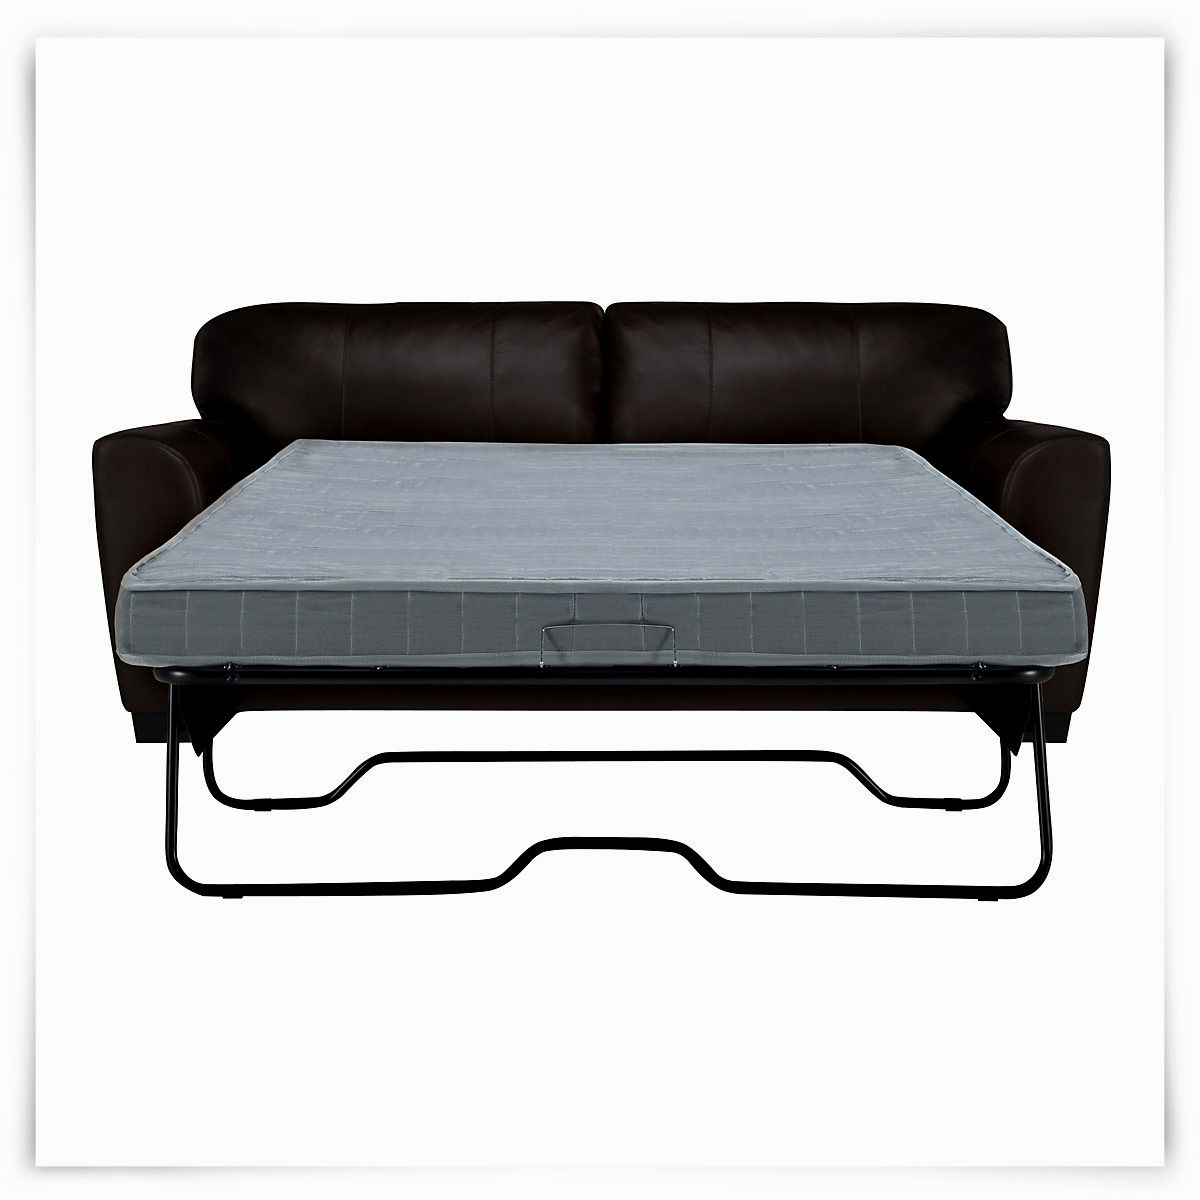 new small sofa sleeper décor-Sensational Small sofa Sleeper Photograph